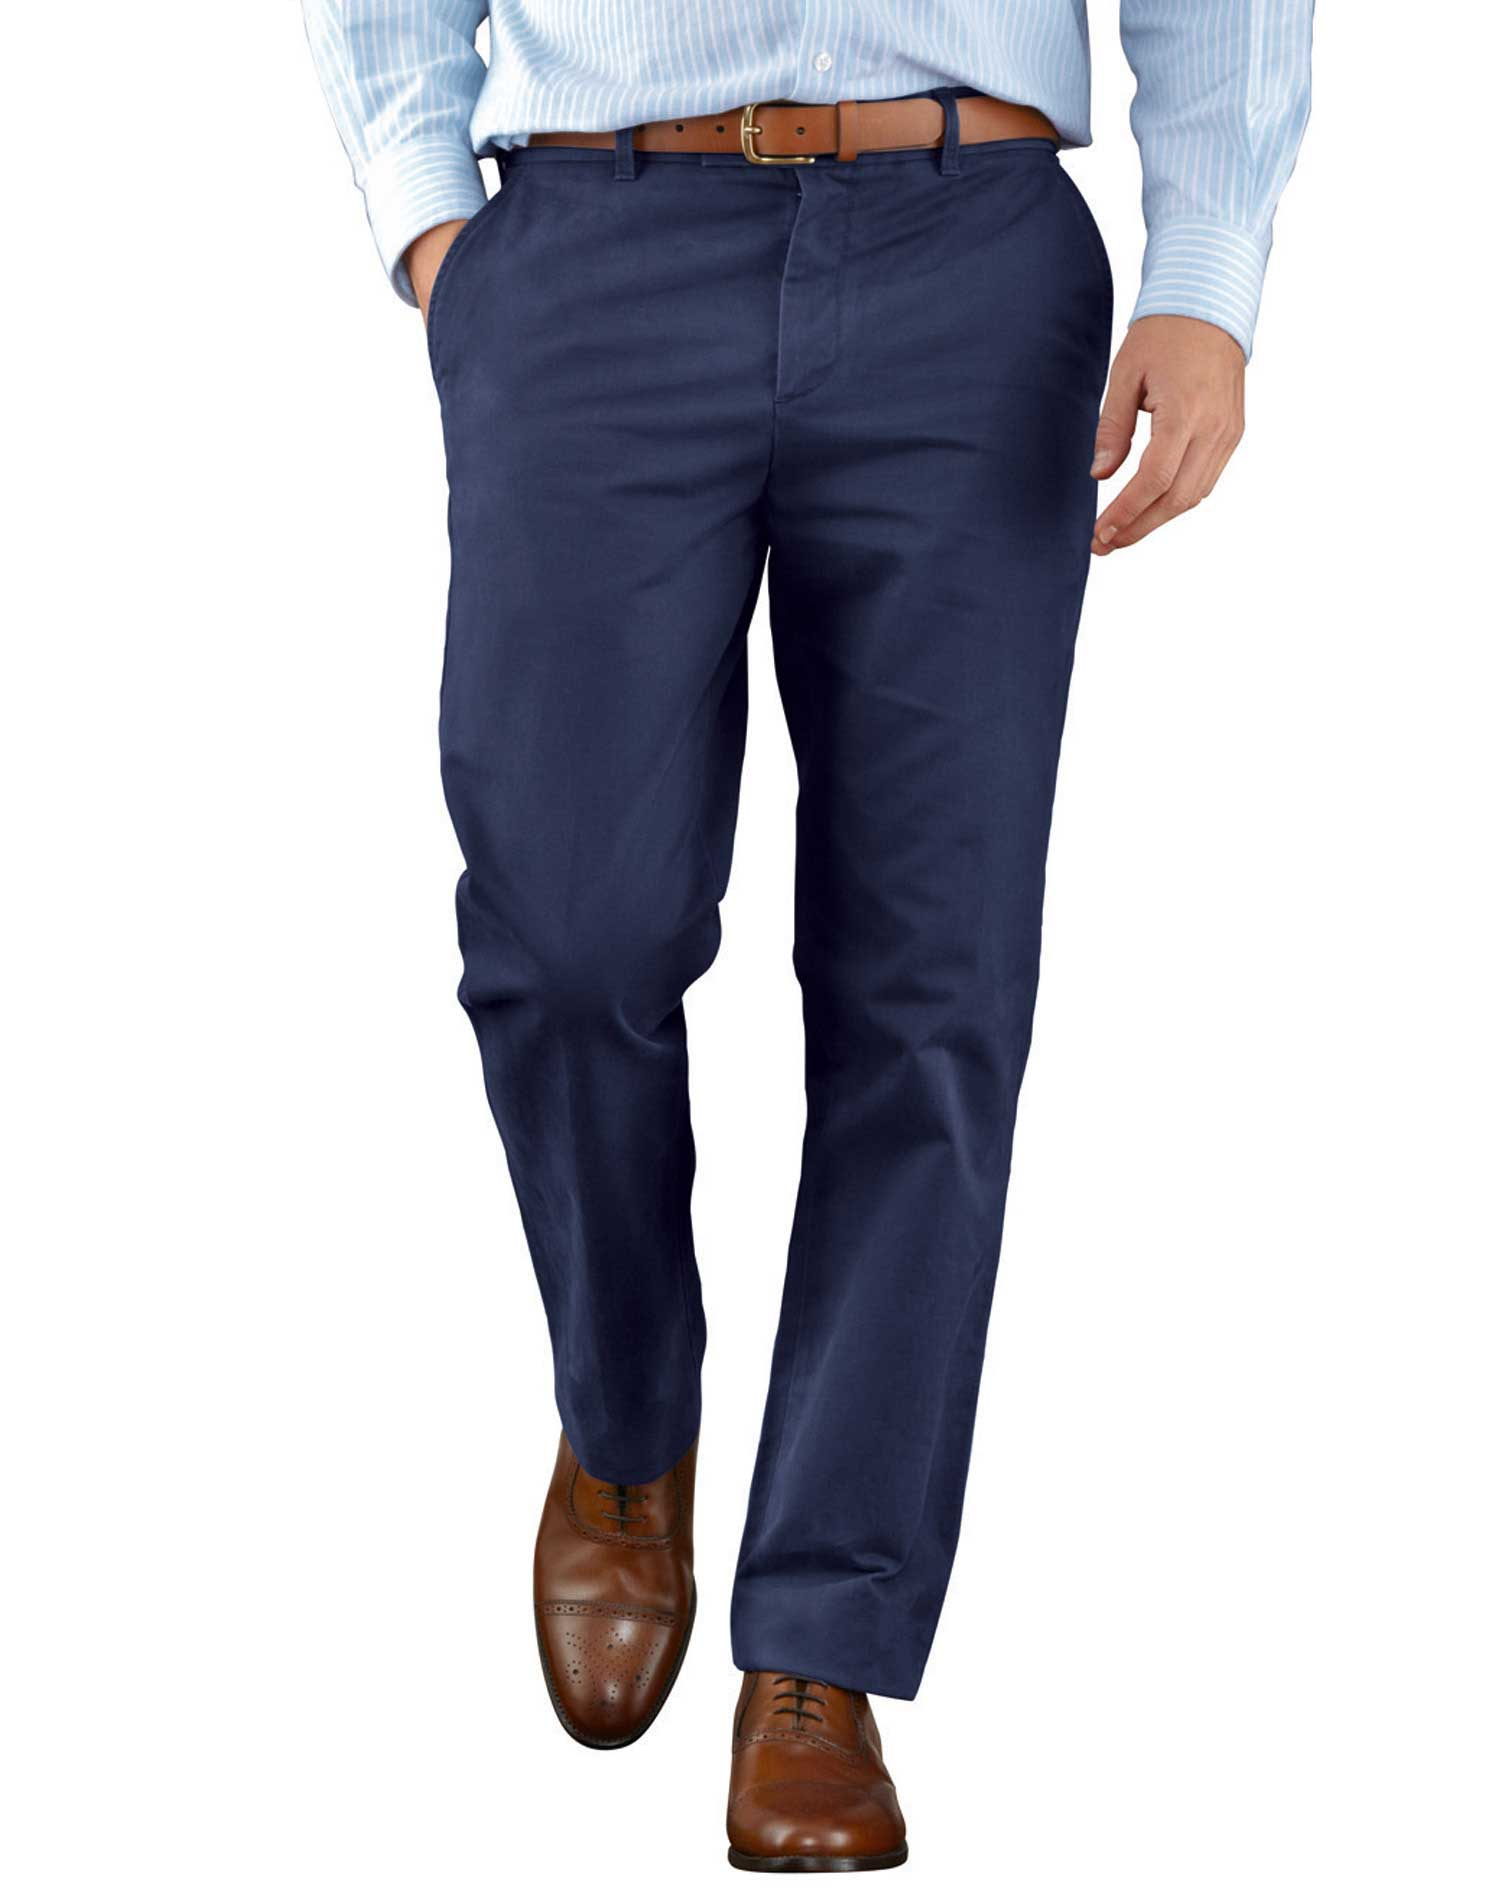 Blue Slim Fit Flat Front Weekend Cotton Chino Trousers Size W38 L32 by Charles Tyrwhitt